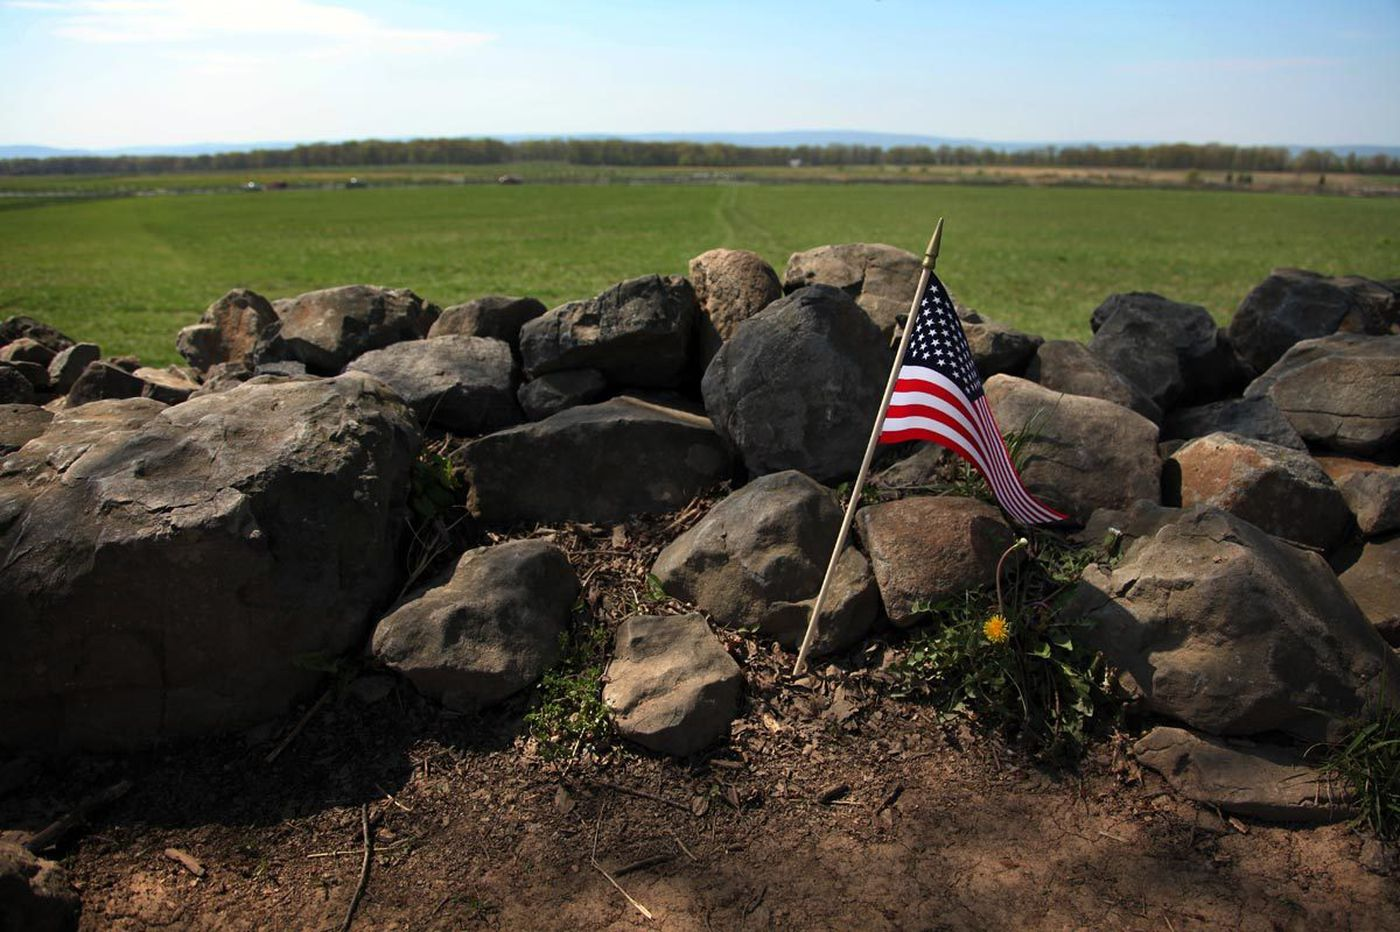 Protests planned at Gettysburg battlefield this weekend